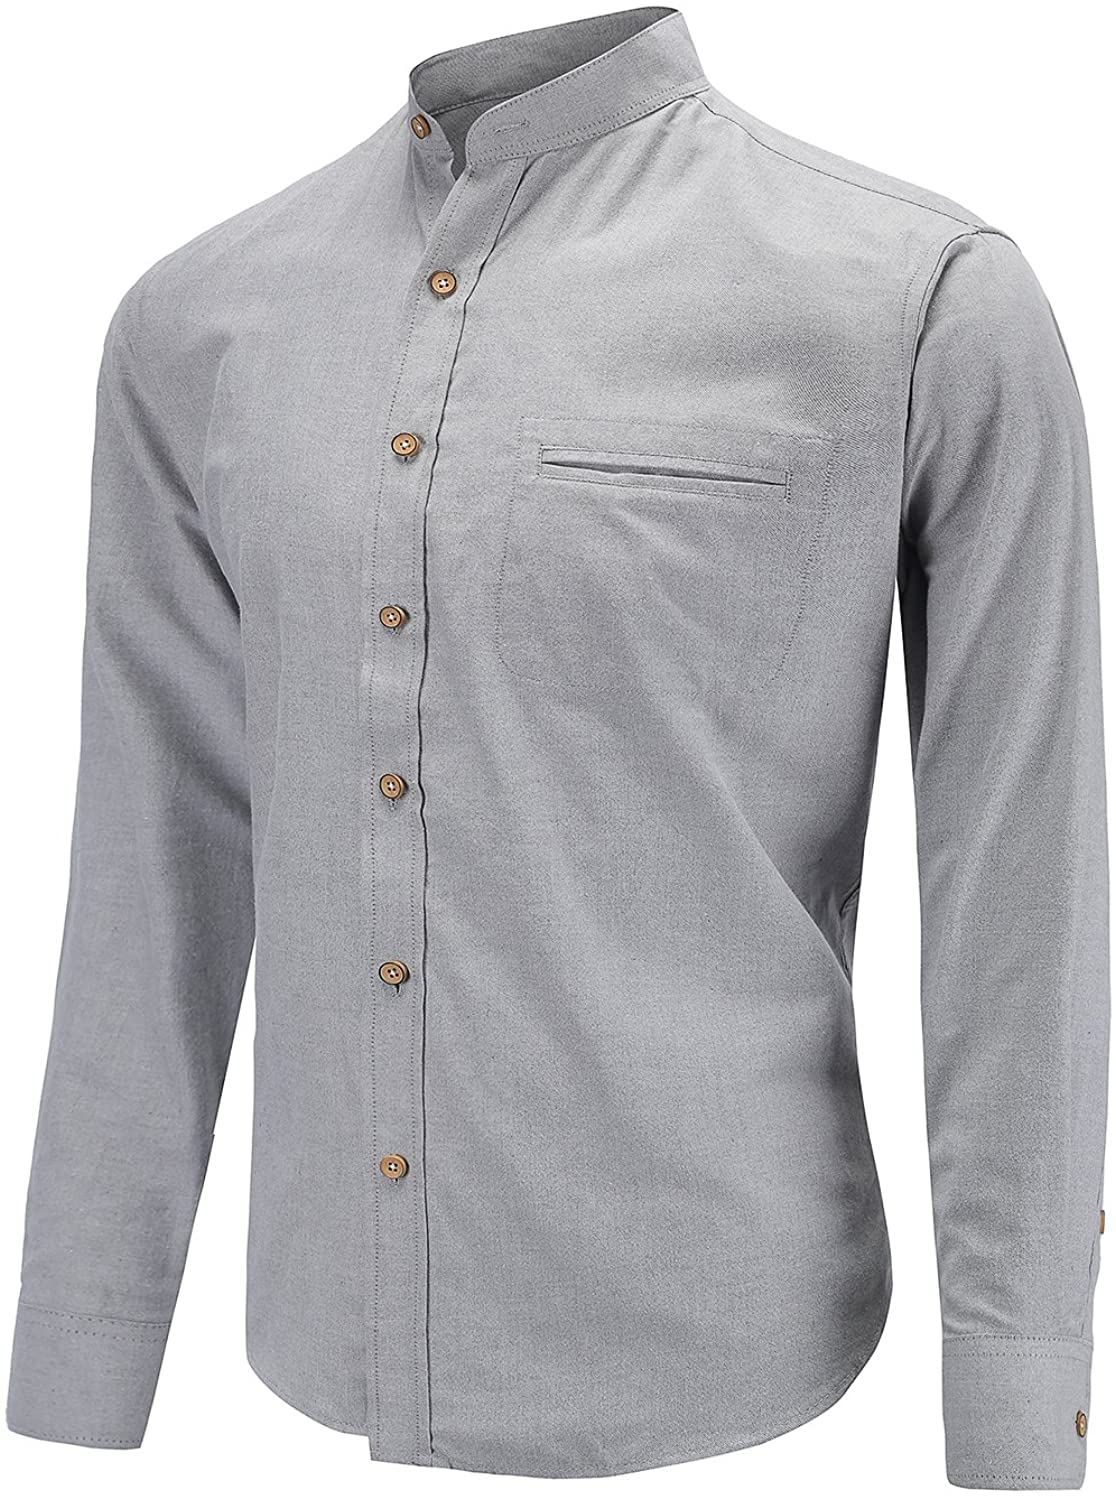 Mens Slim Fit Casual Oxford Dress Shirt Banded Collar Long Sleeve Button Down Shirts with Pocket